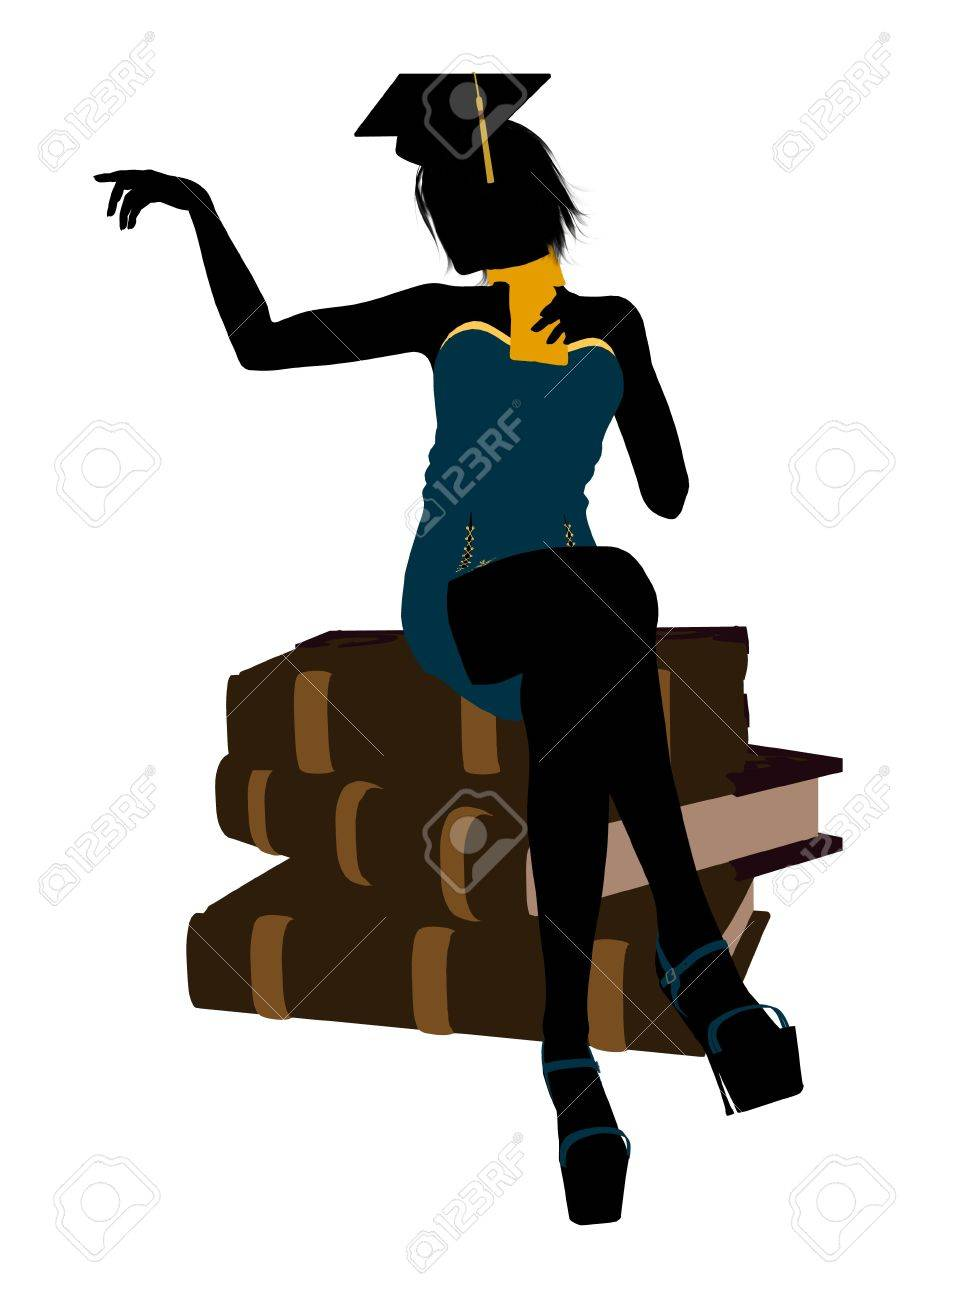 female graduate sitting on a pile of books silhouette on a white background stock photo